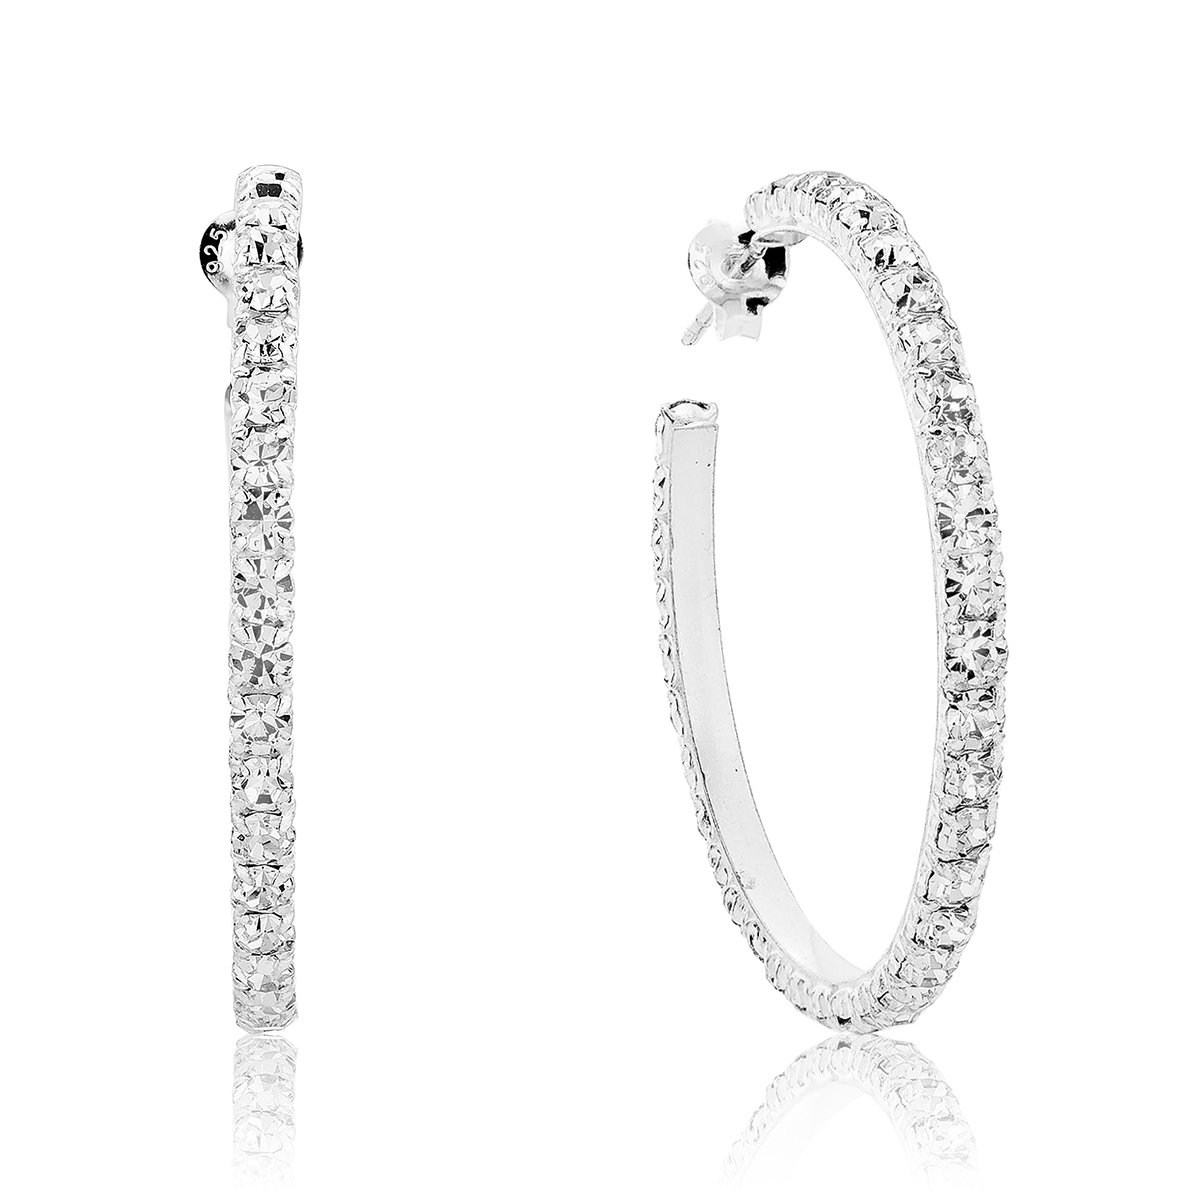 e9aab8556af DTPSilver - 925 Sterling Silver Half Hoops Earrings with Swarovski Crystal  Elements - Colour   Clear - 38 mm  Amazon.co.uk  Jewellery